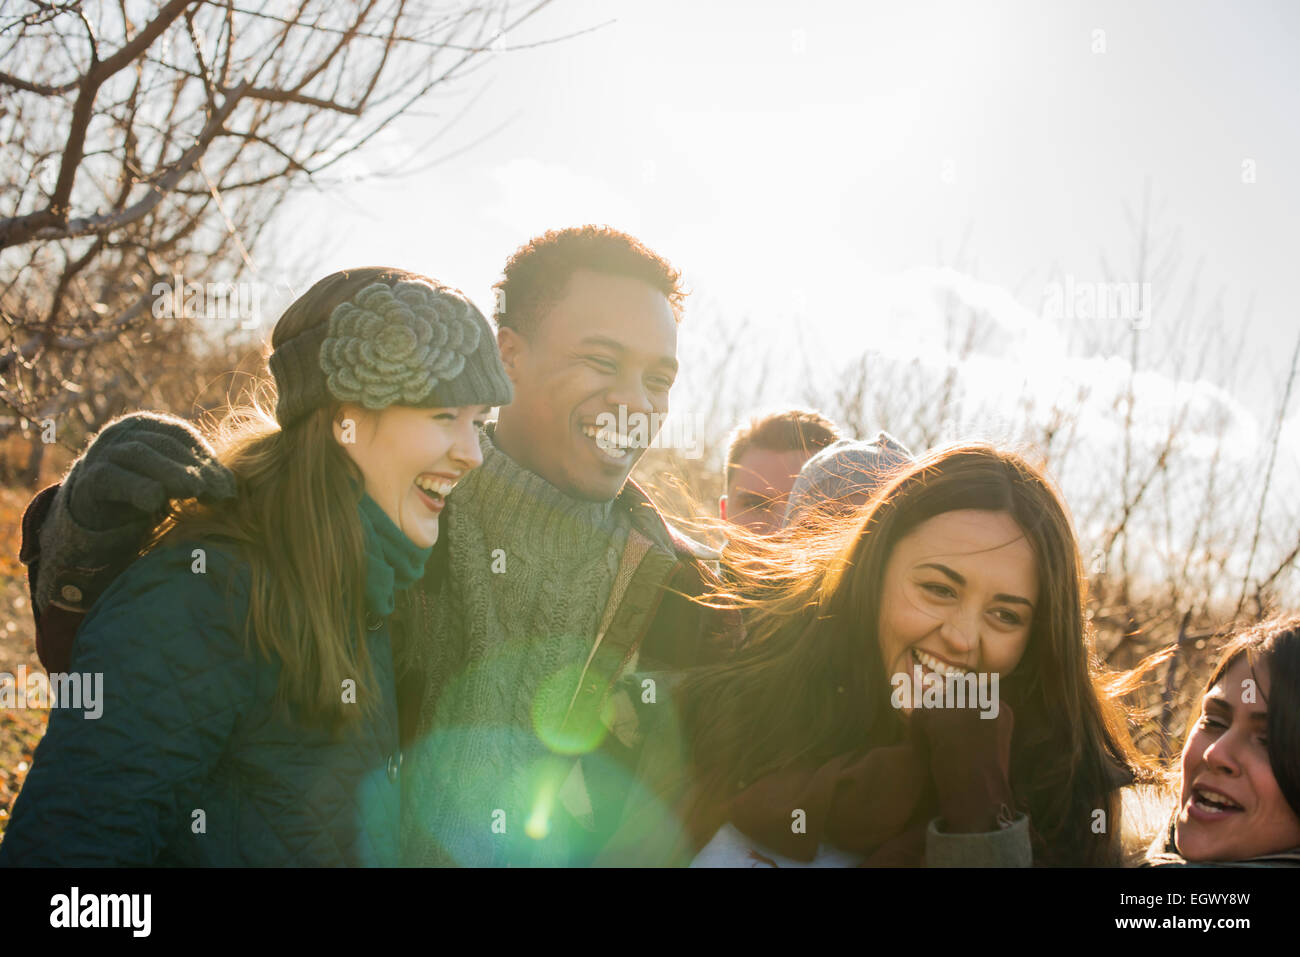 A group of friends on a winter walk. - Stock Image